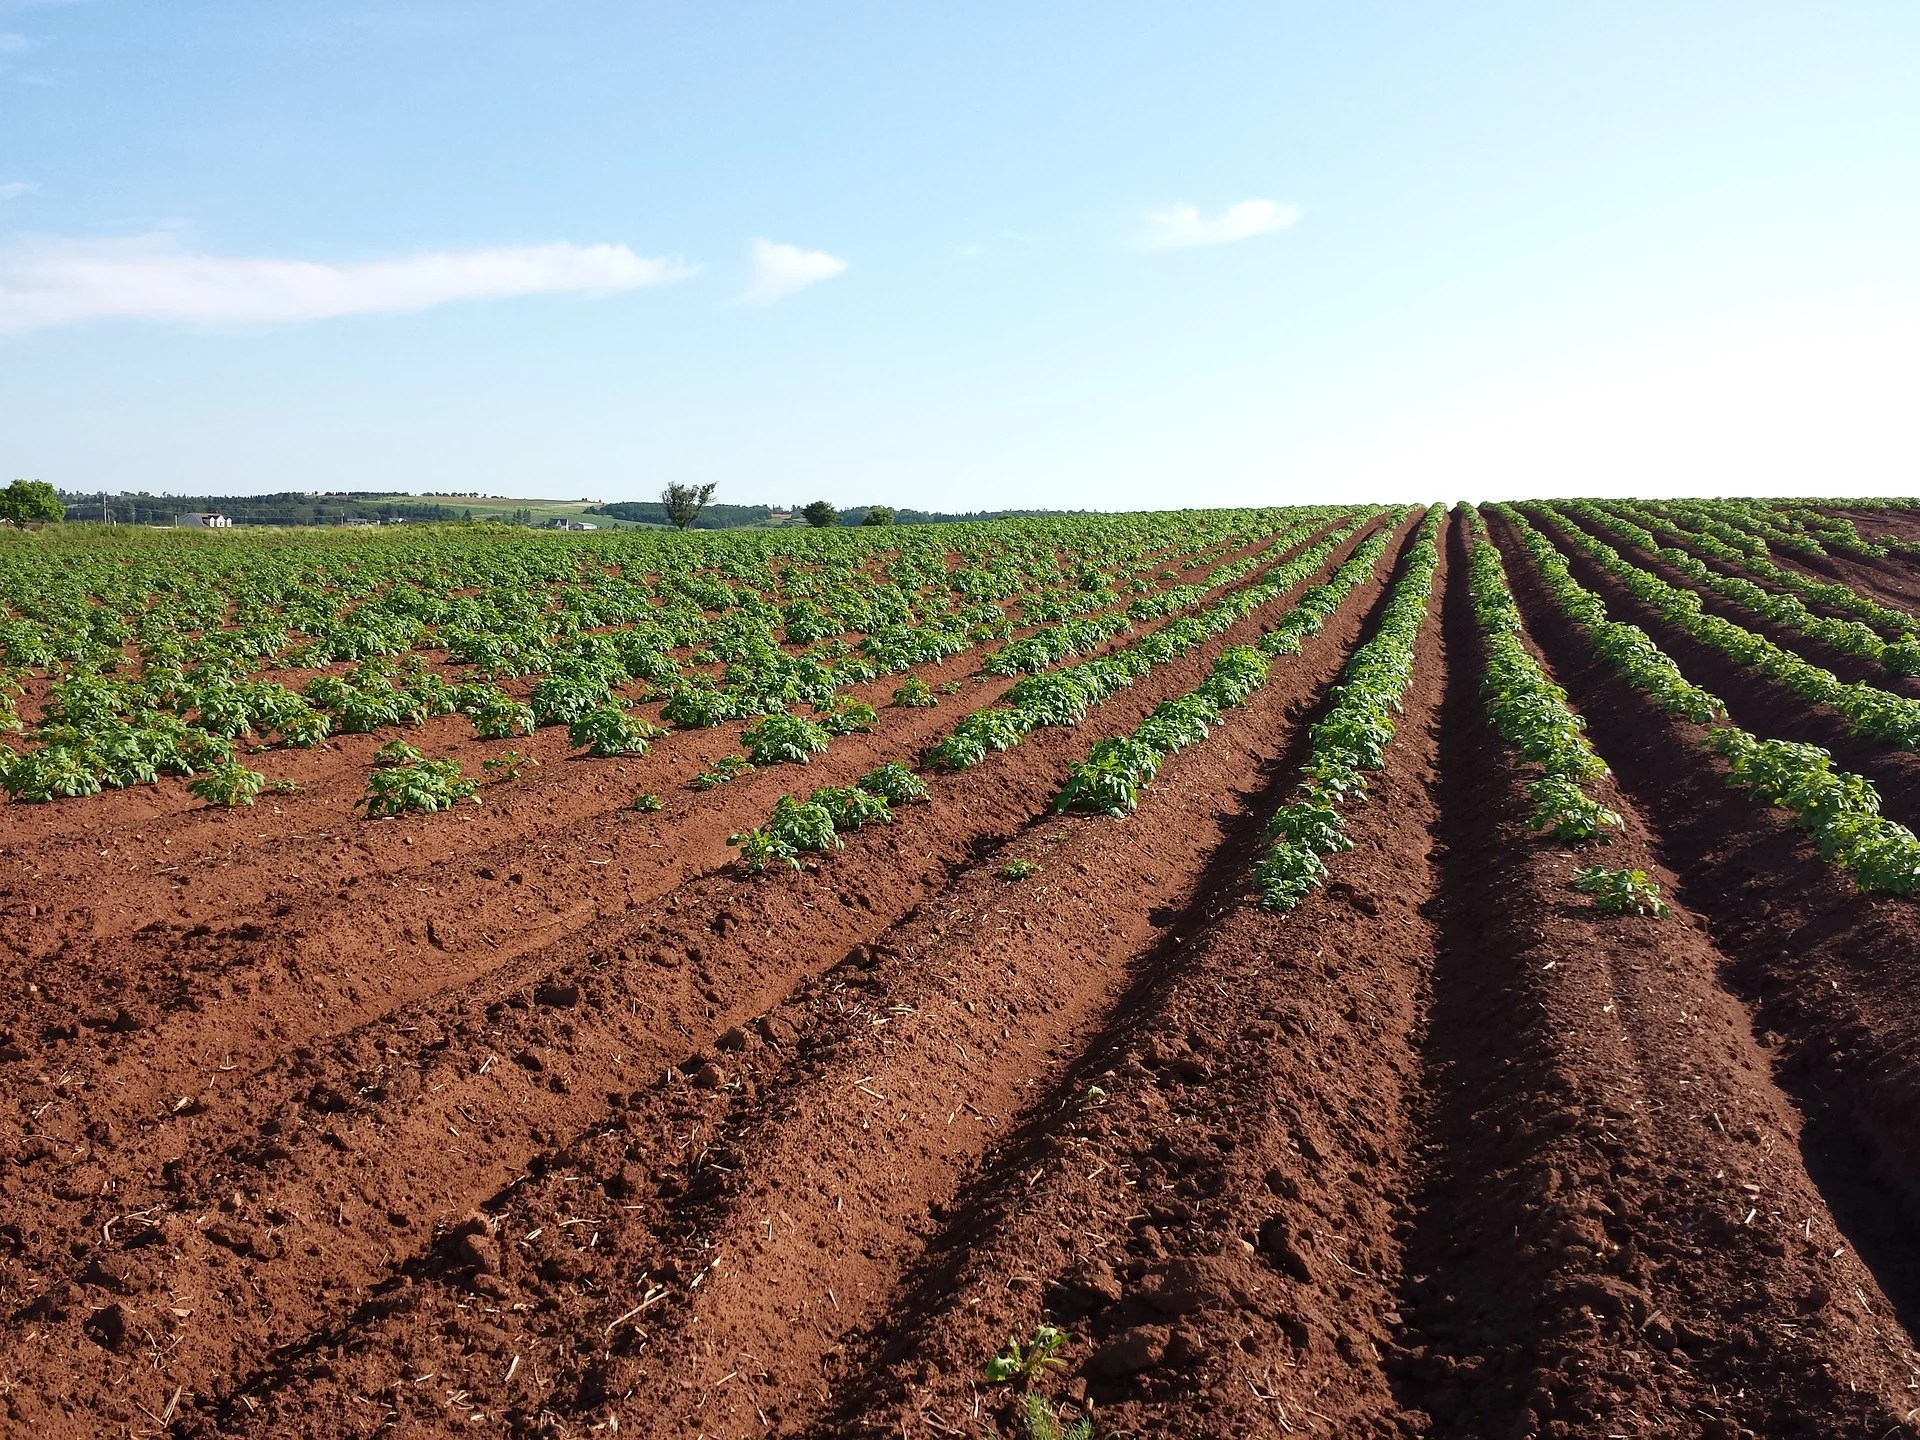 As more food than ever is being grown, it is important to find ways to promote and maintain soil quality.